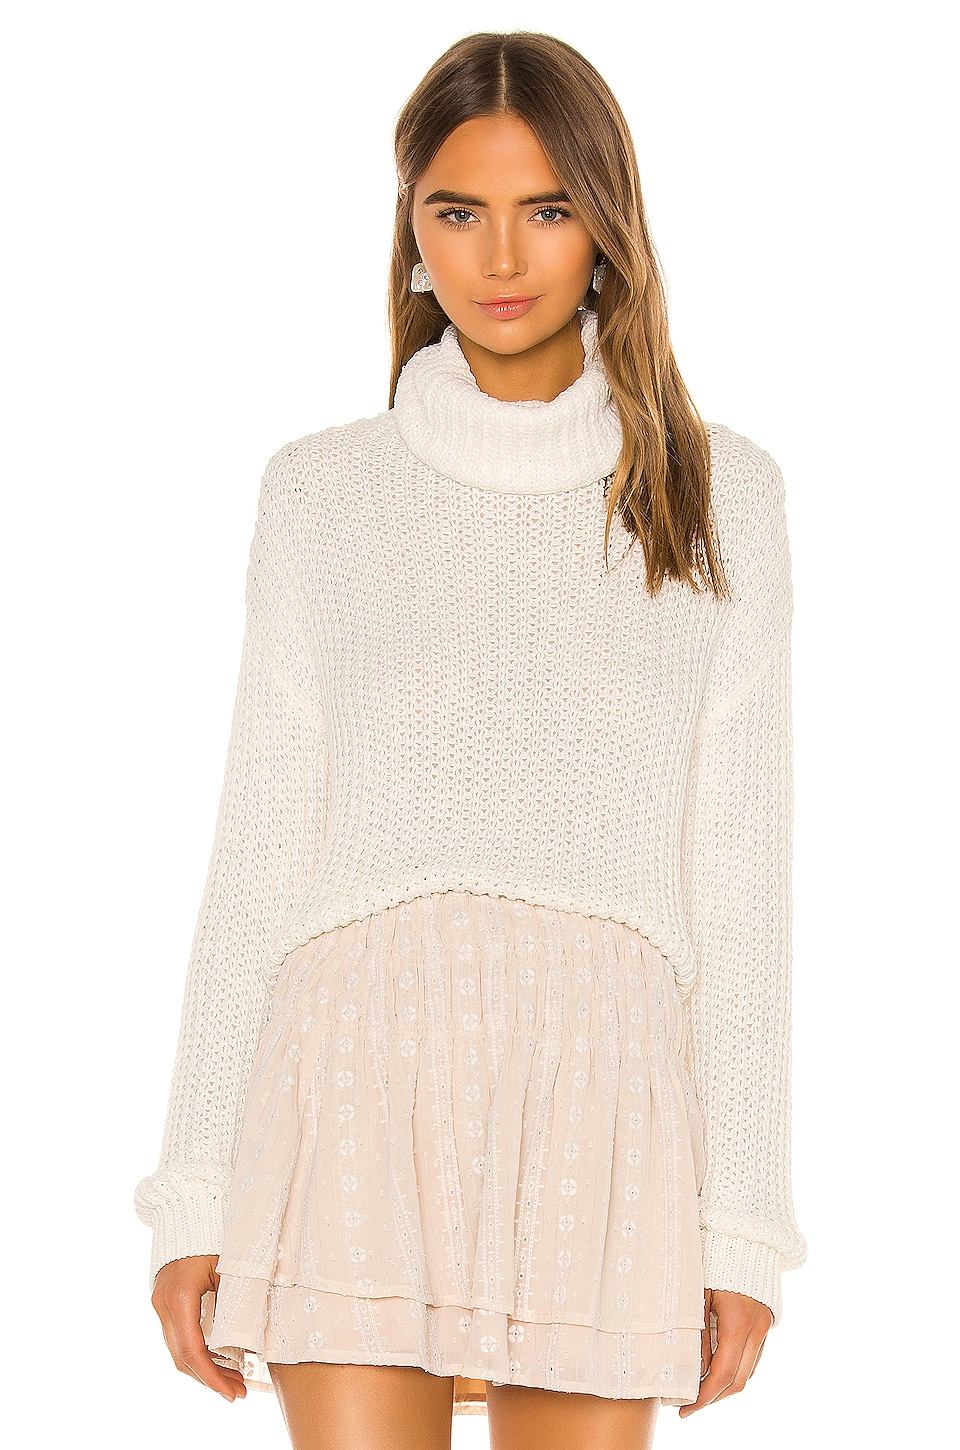 Tularosa Kayla Sweater in Ivory